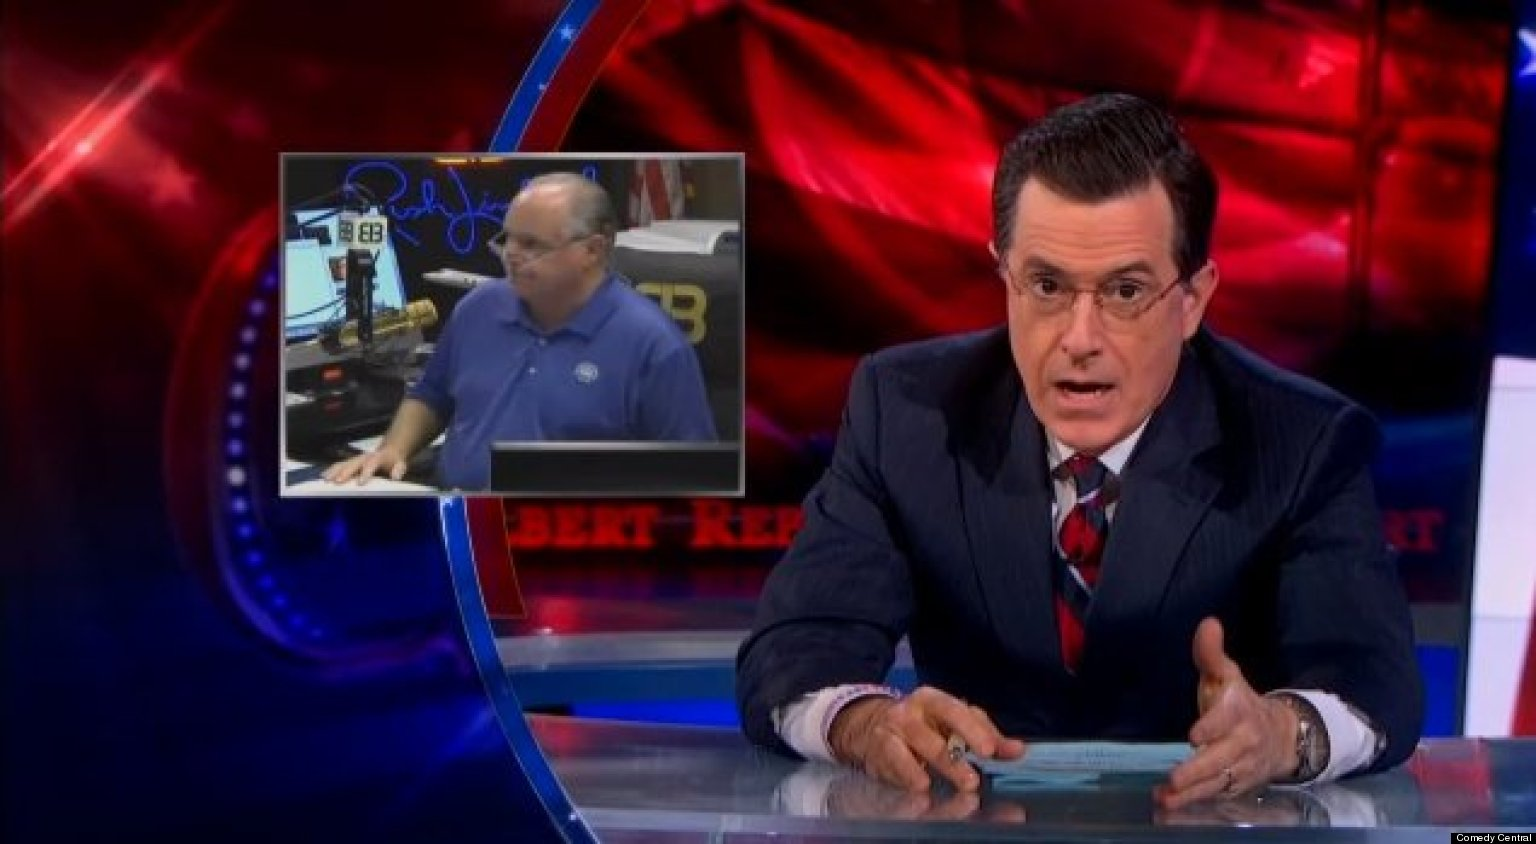 WATCH: Colbert Mocks Right Over Nutty Conspiracy Theory